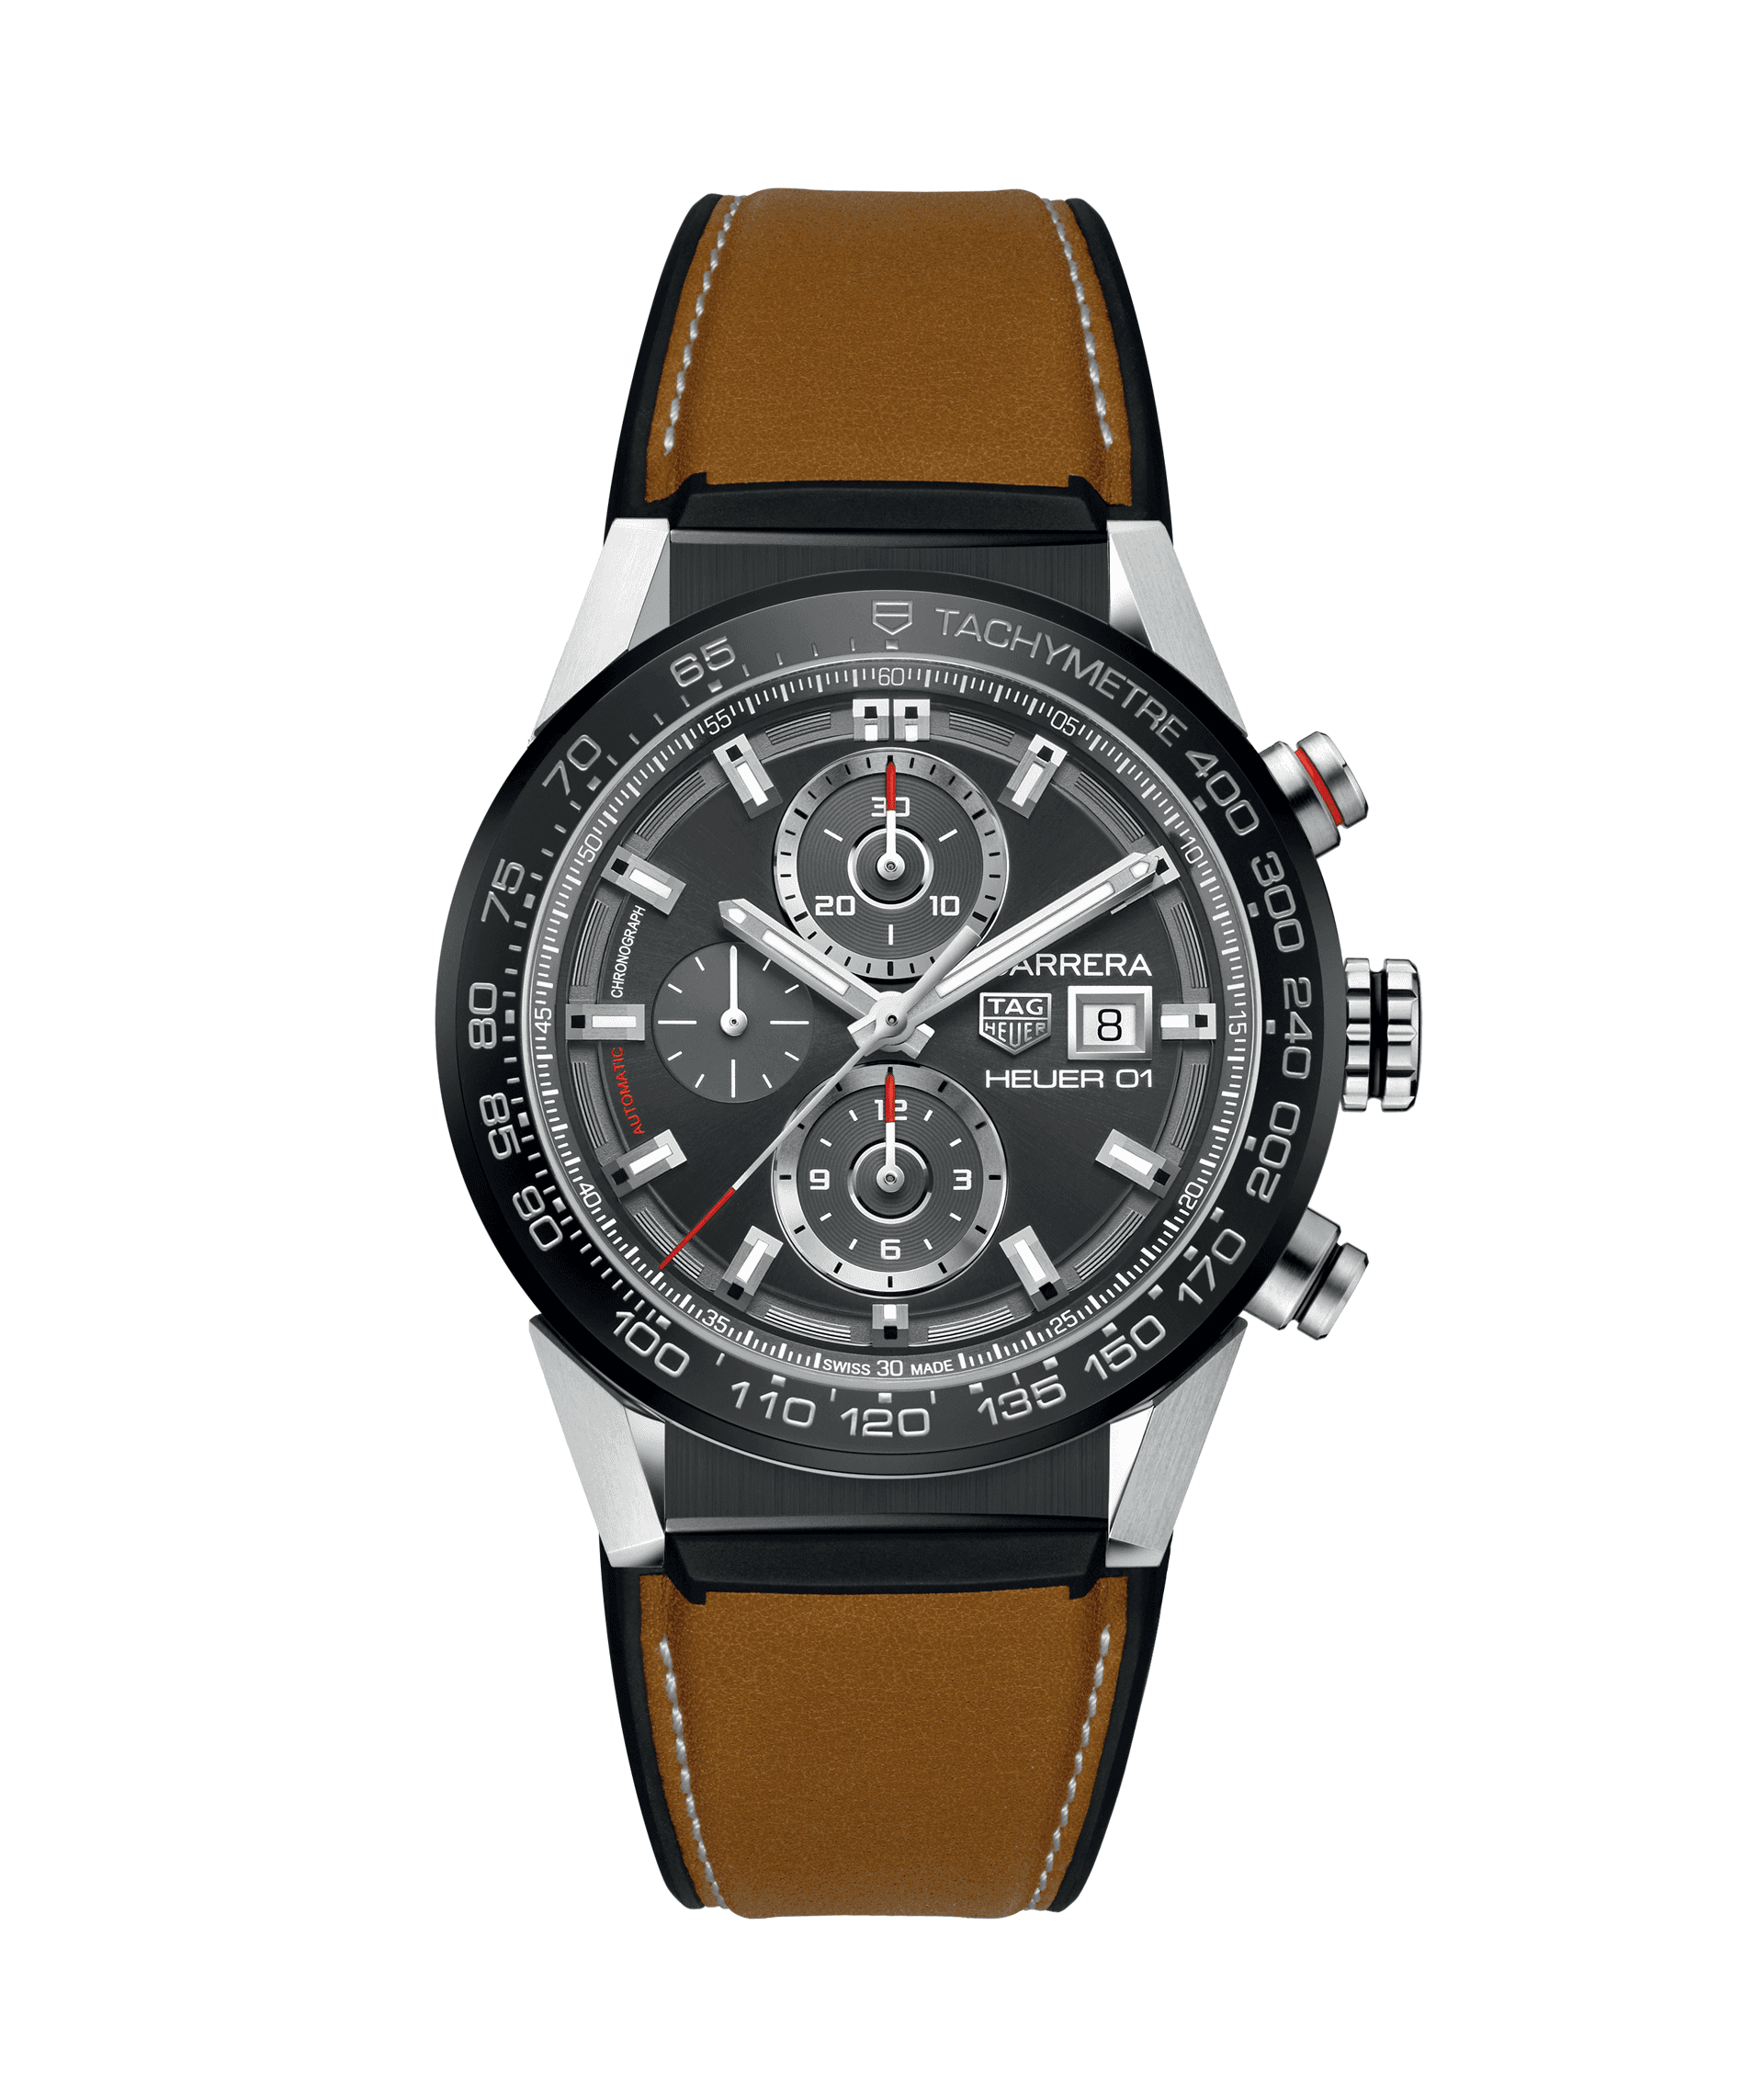 TAG HEUER CARRERA CALIBRE HEUER 01 100m - 43mm - CAR201W.FT6122